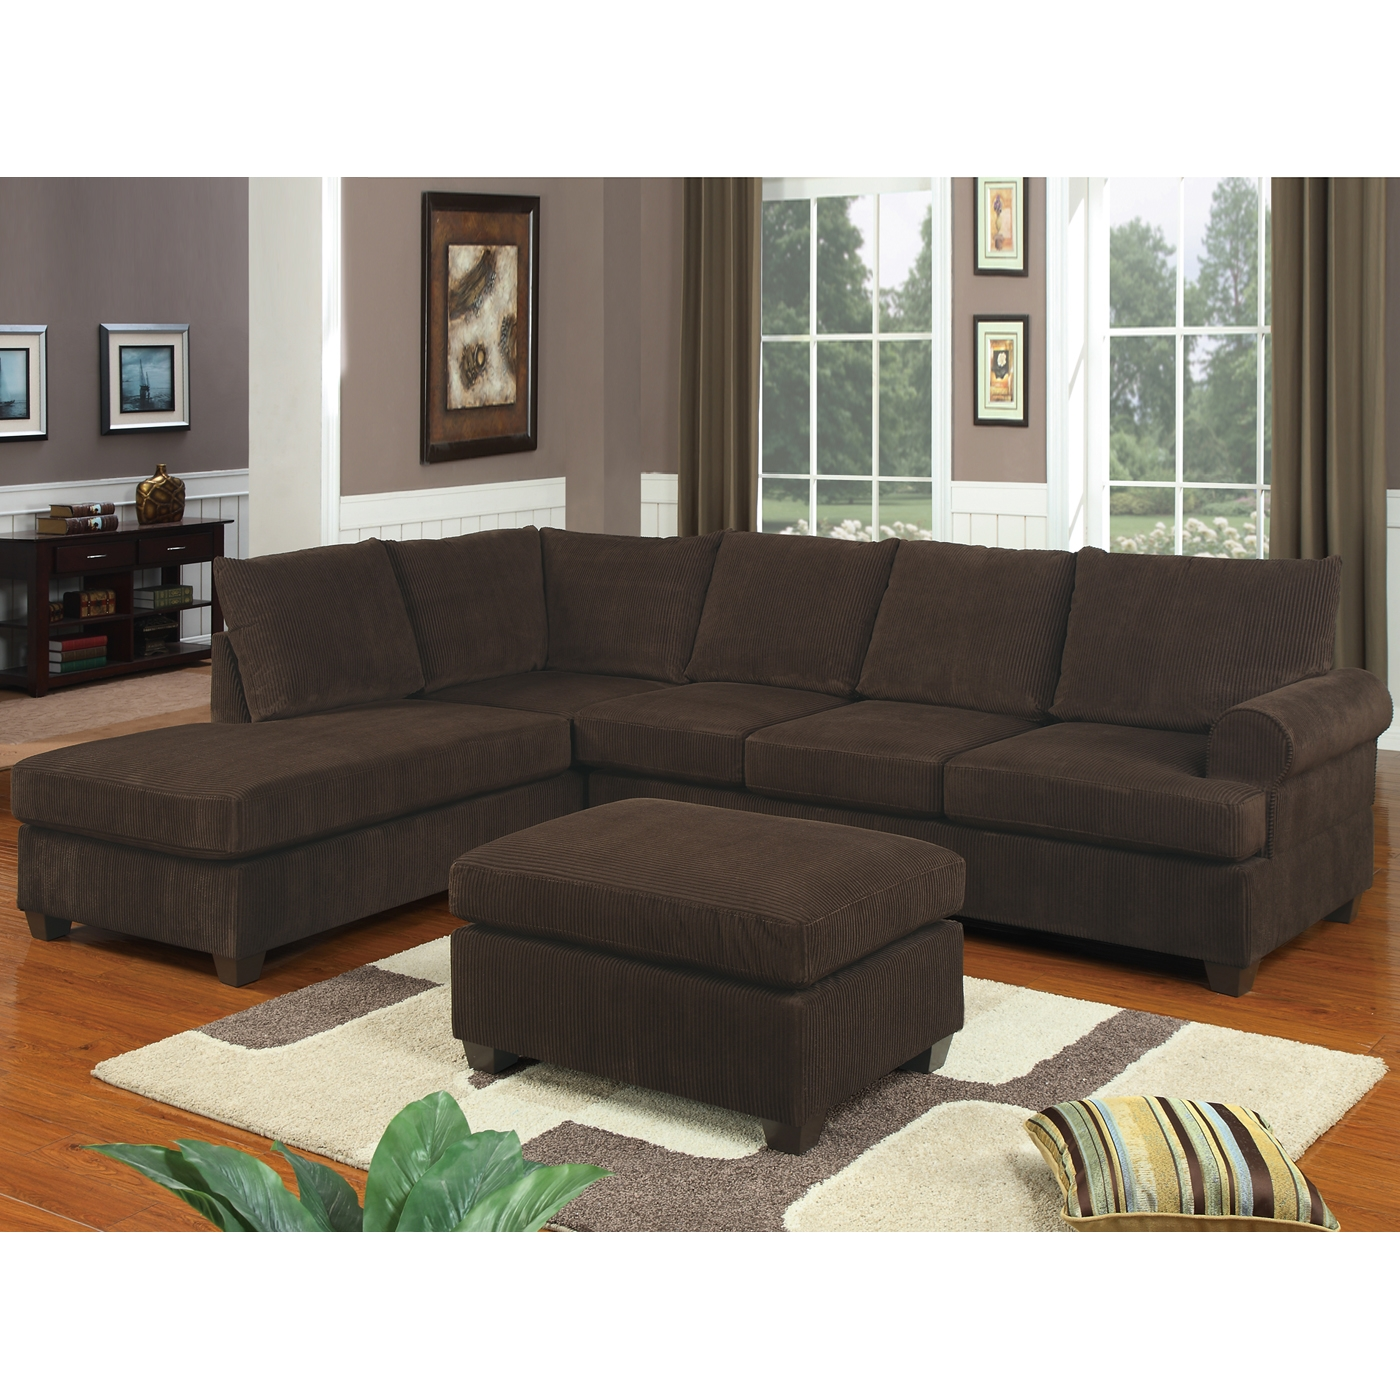 Popular Photo of 10 Foot Sectional Sofa